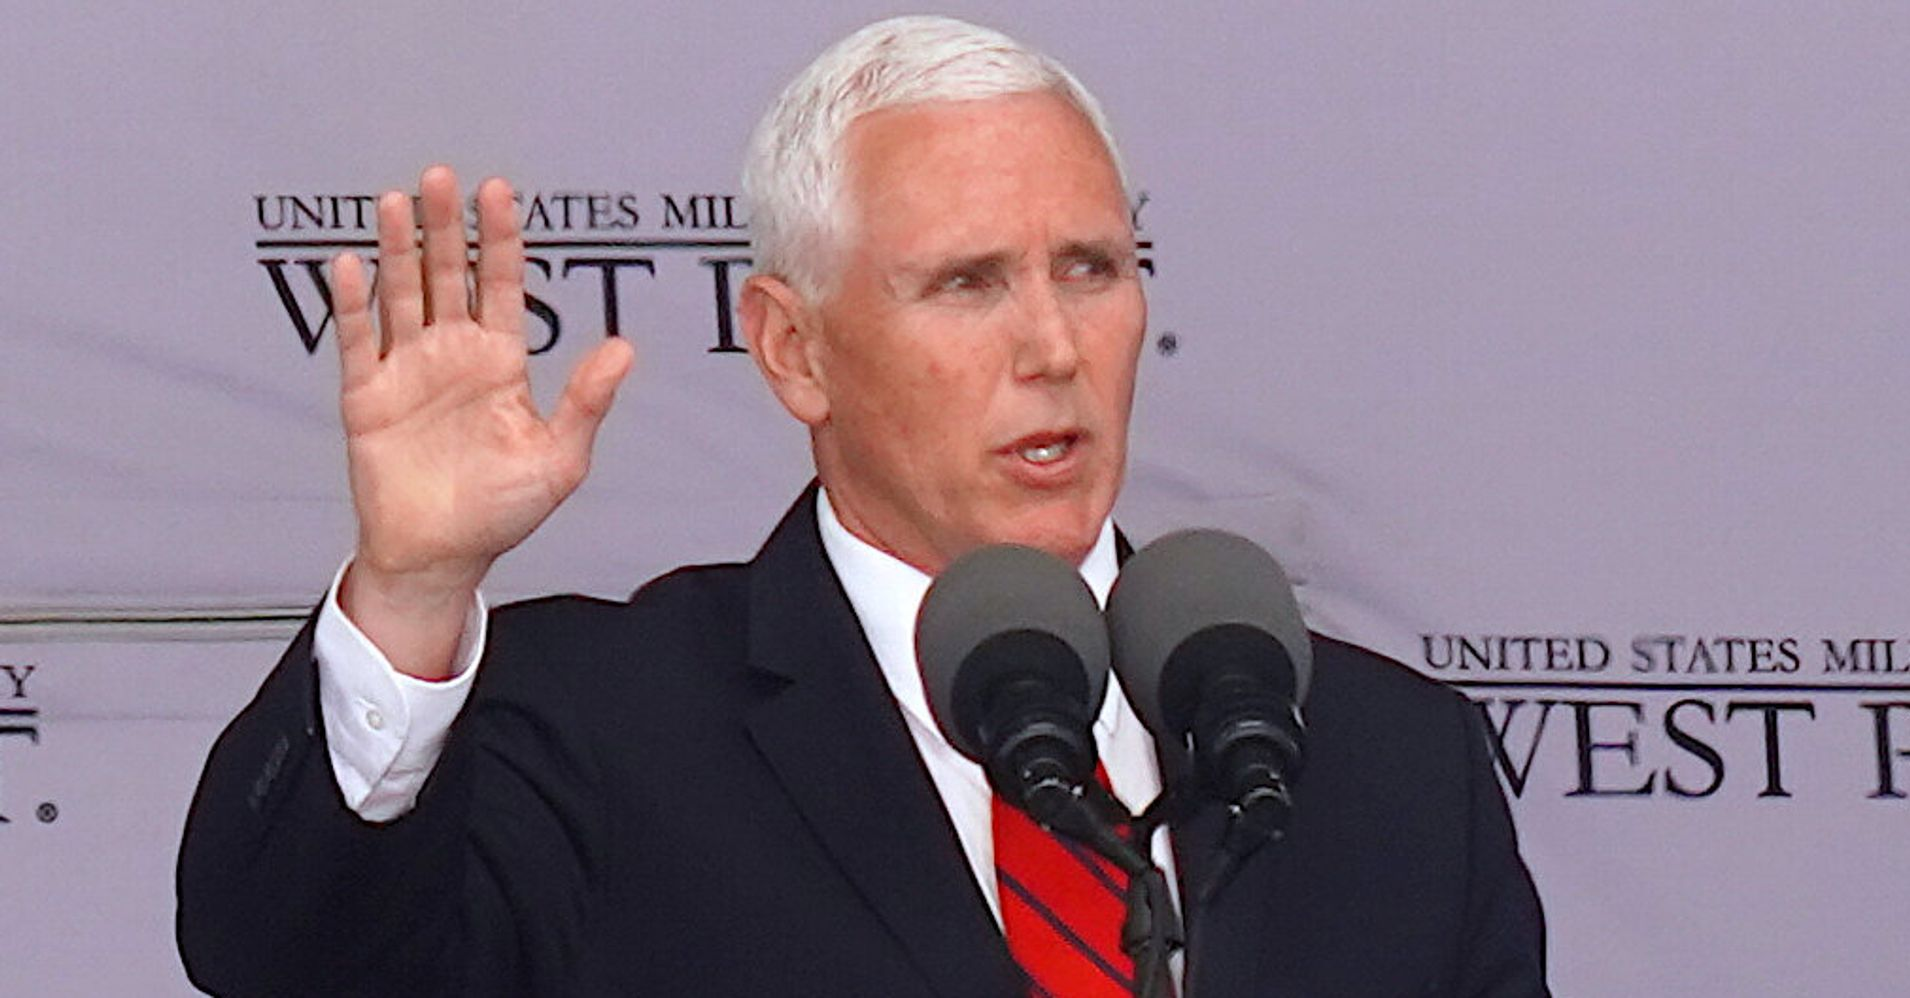 I'm A Veteran's Wife. Here's Why I Protested Mike Pence At